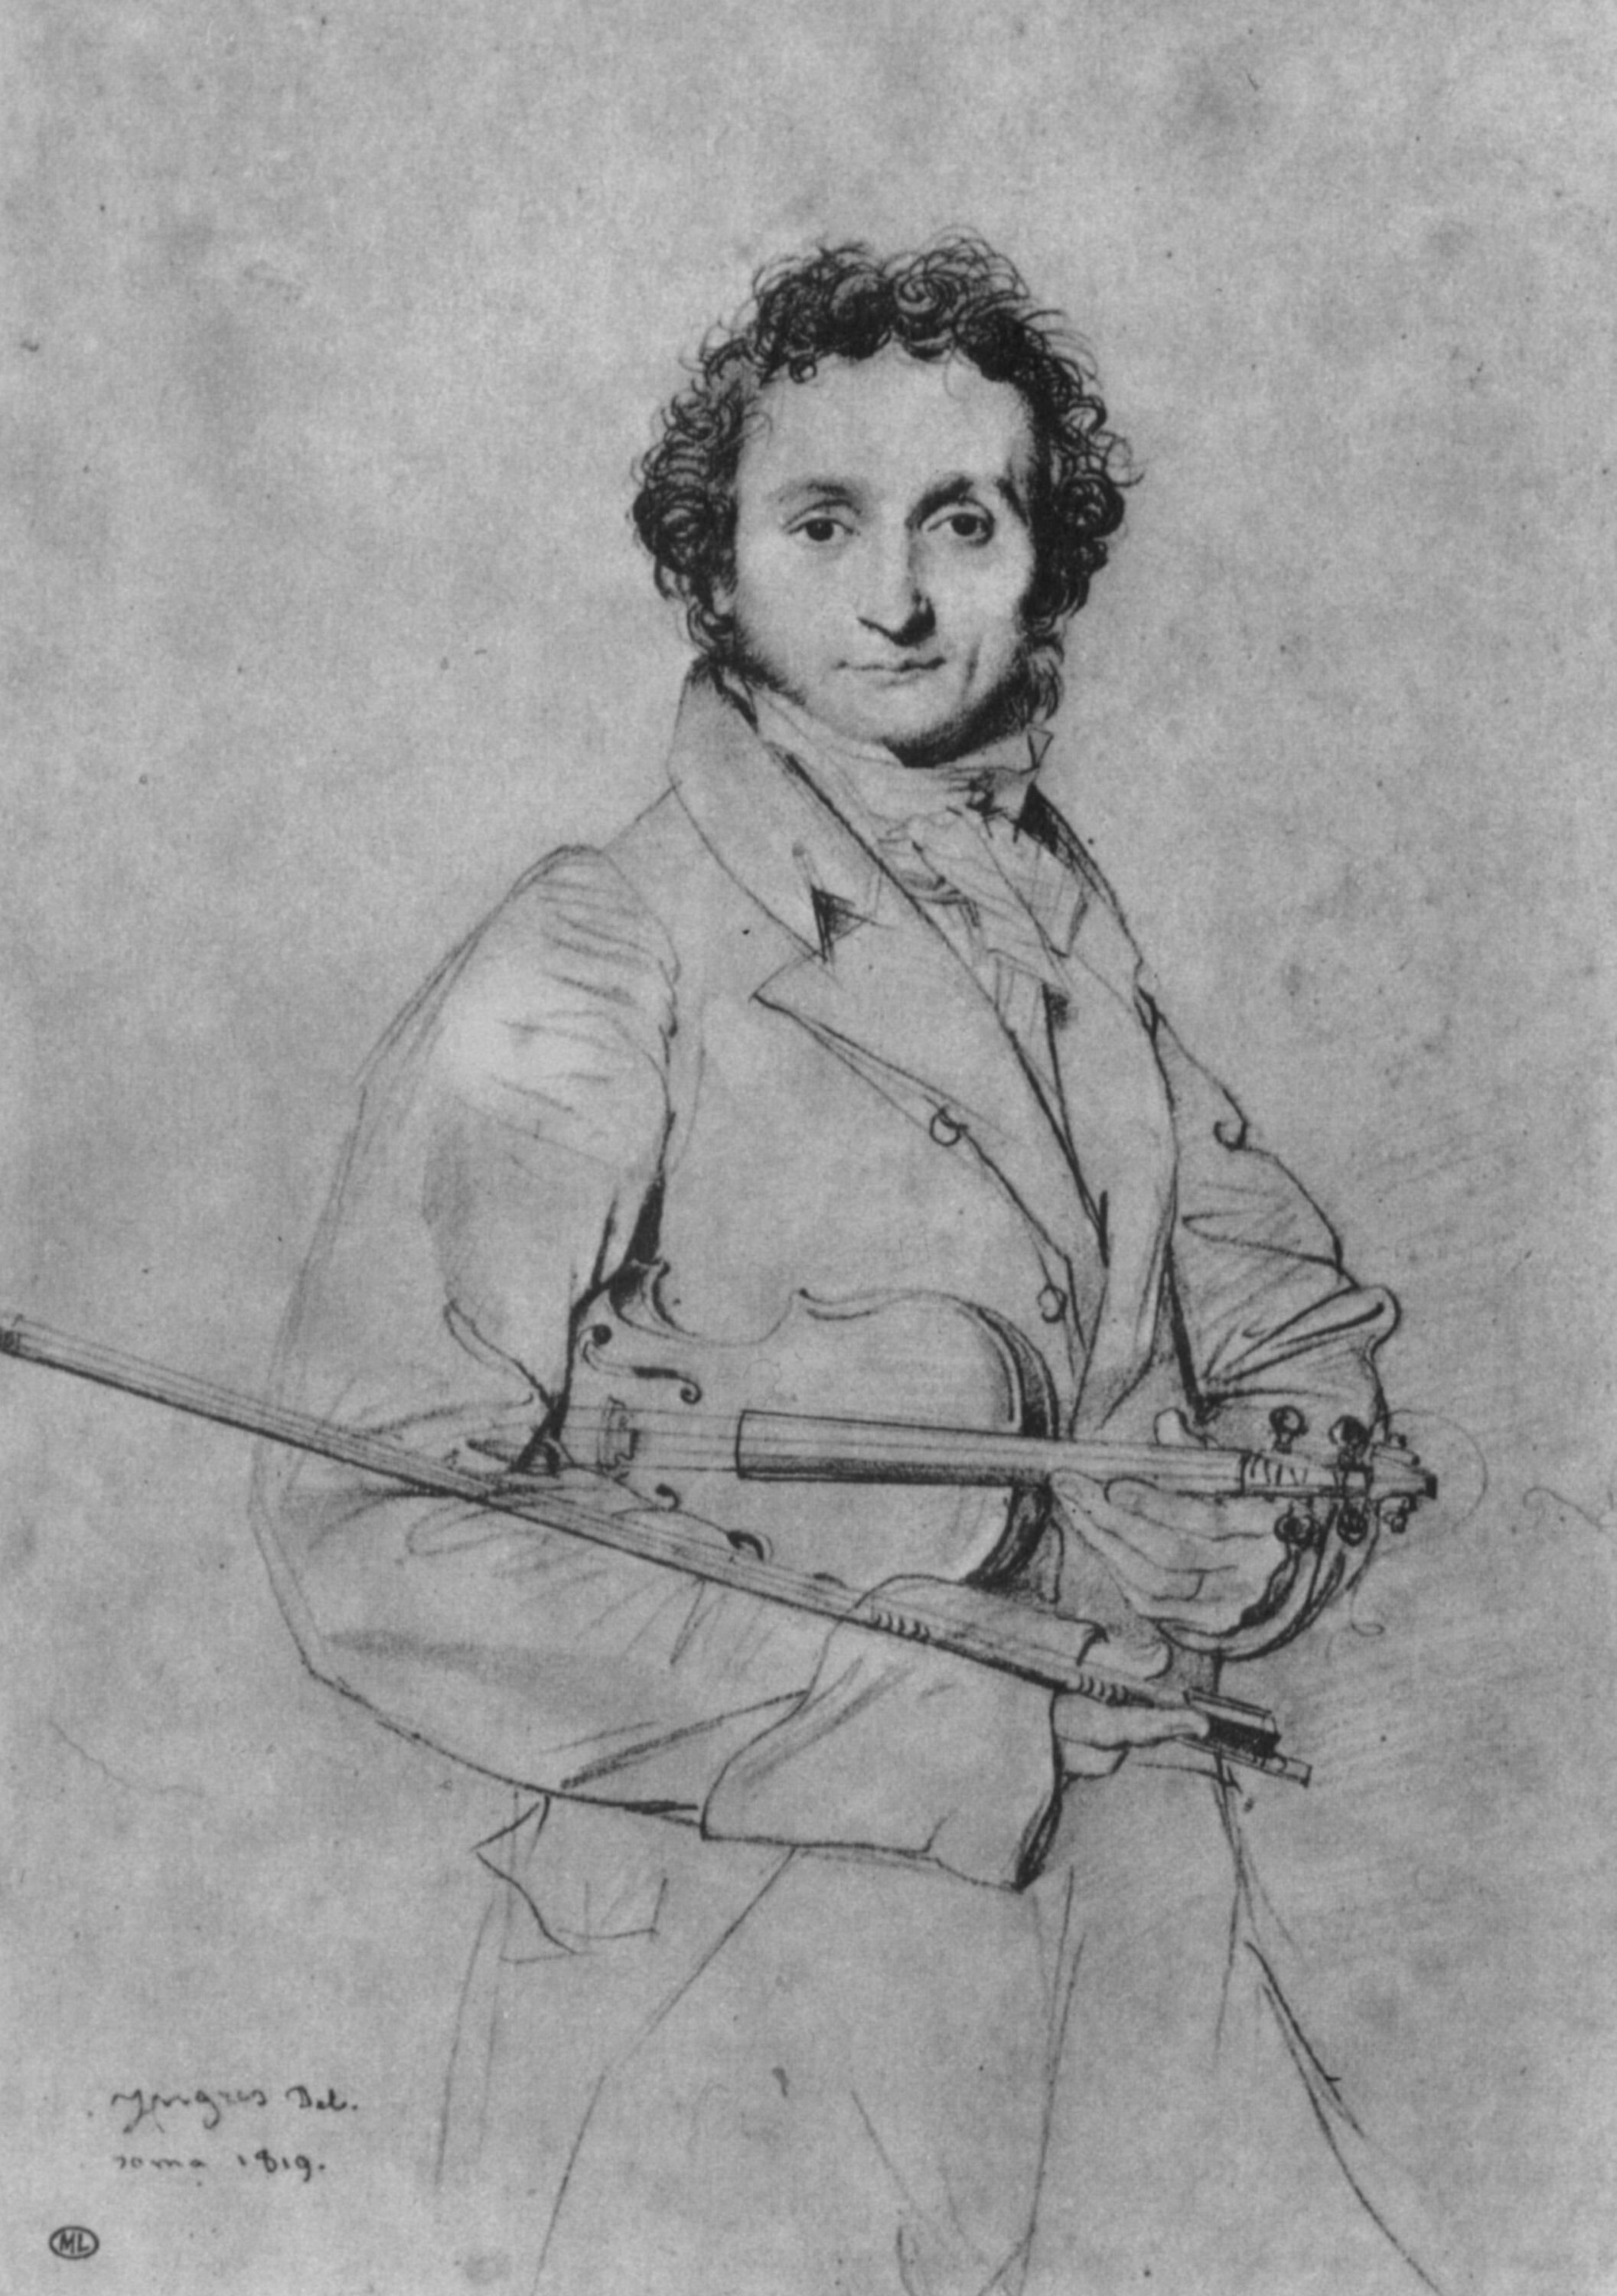 Musicians and Artists: Virtuosos and Ingres